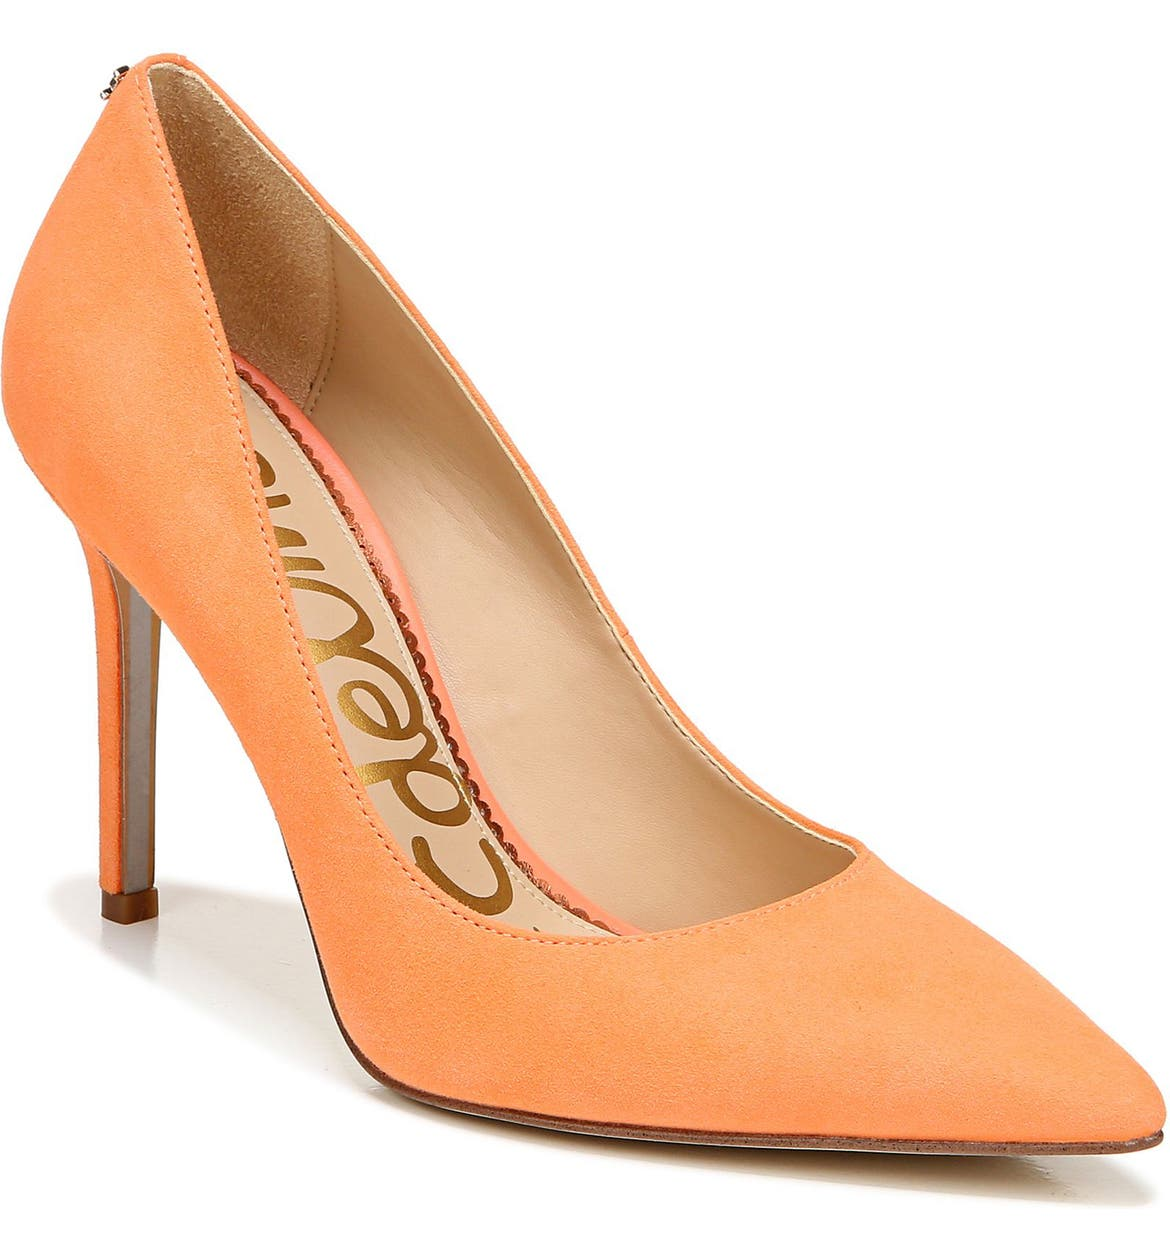 Sam Edelman orange pumps.